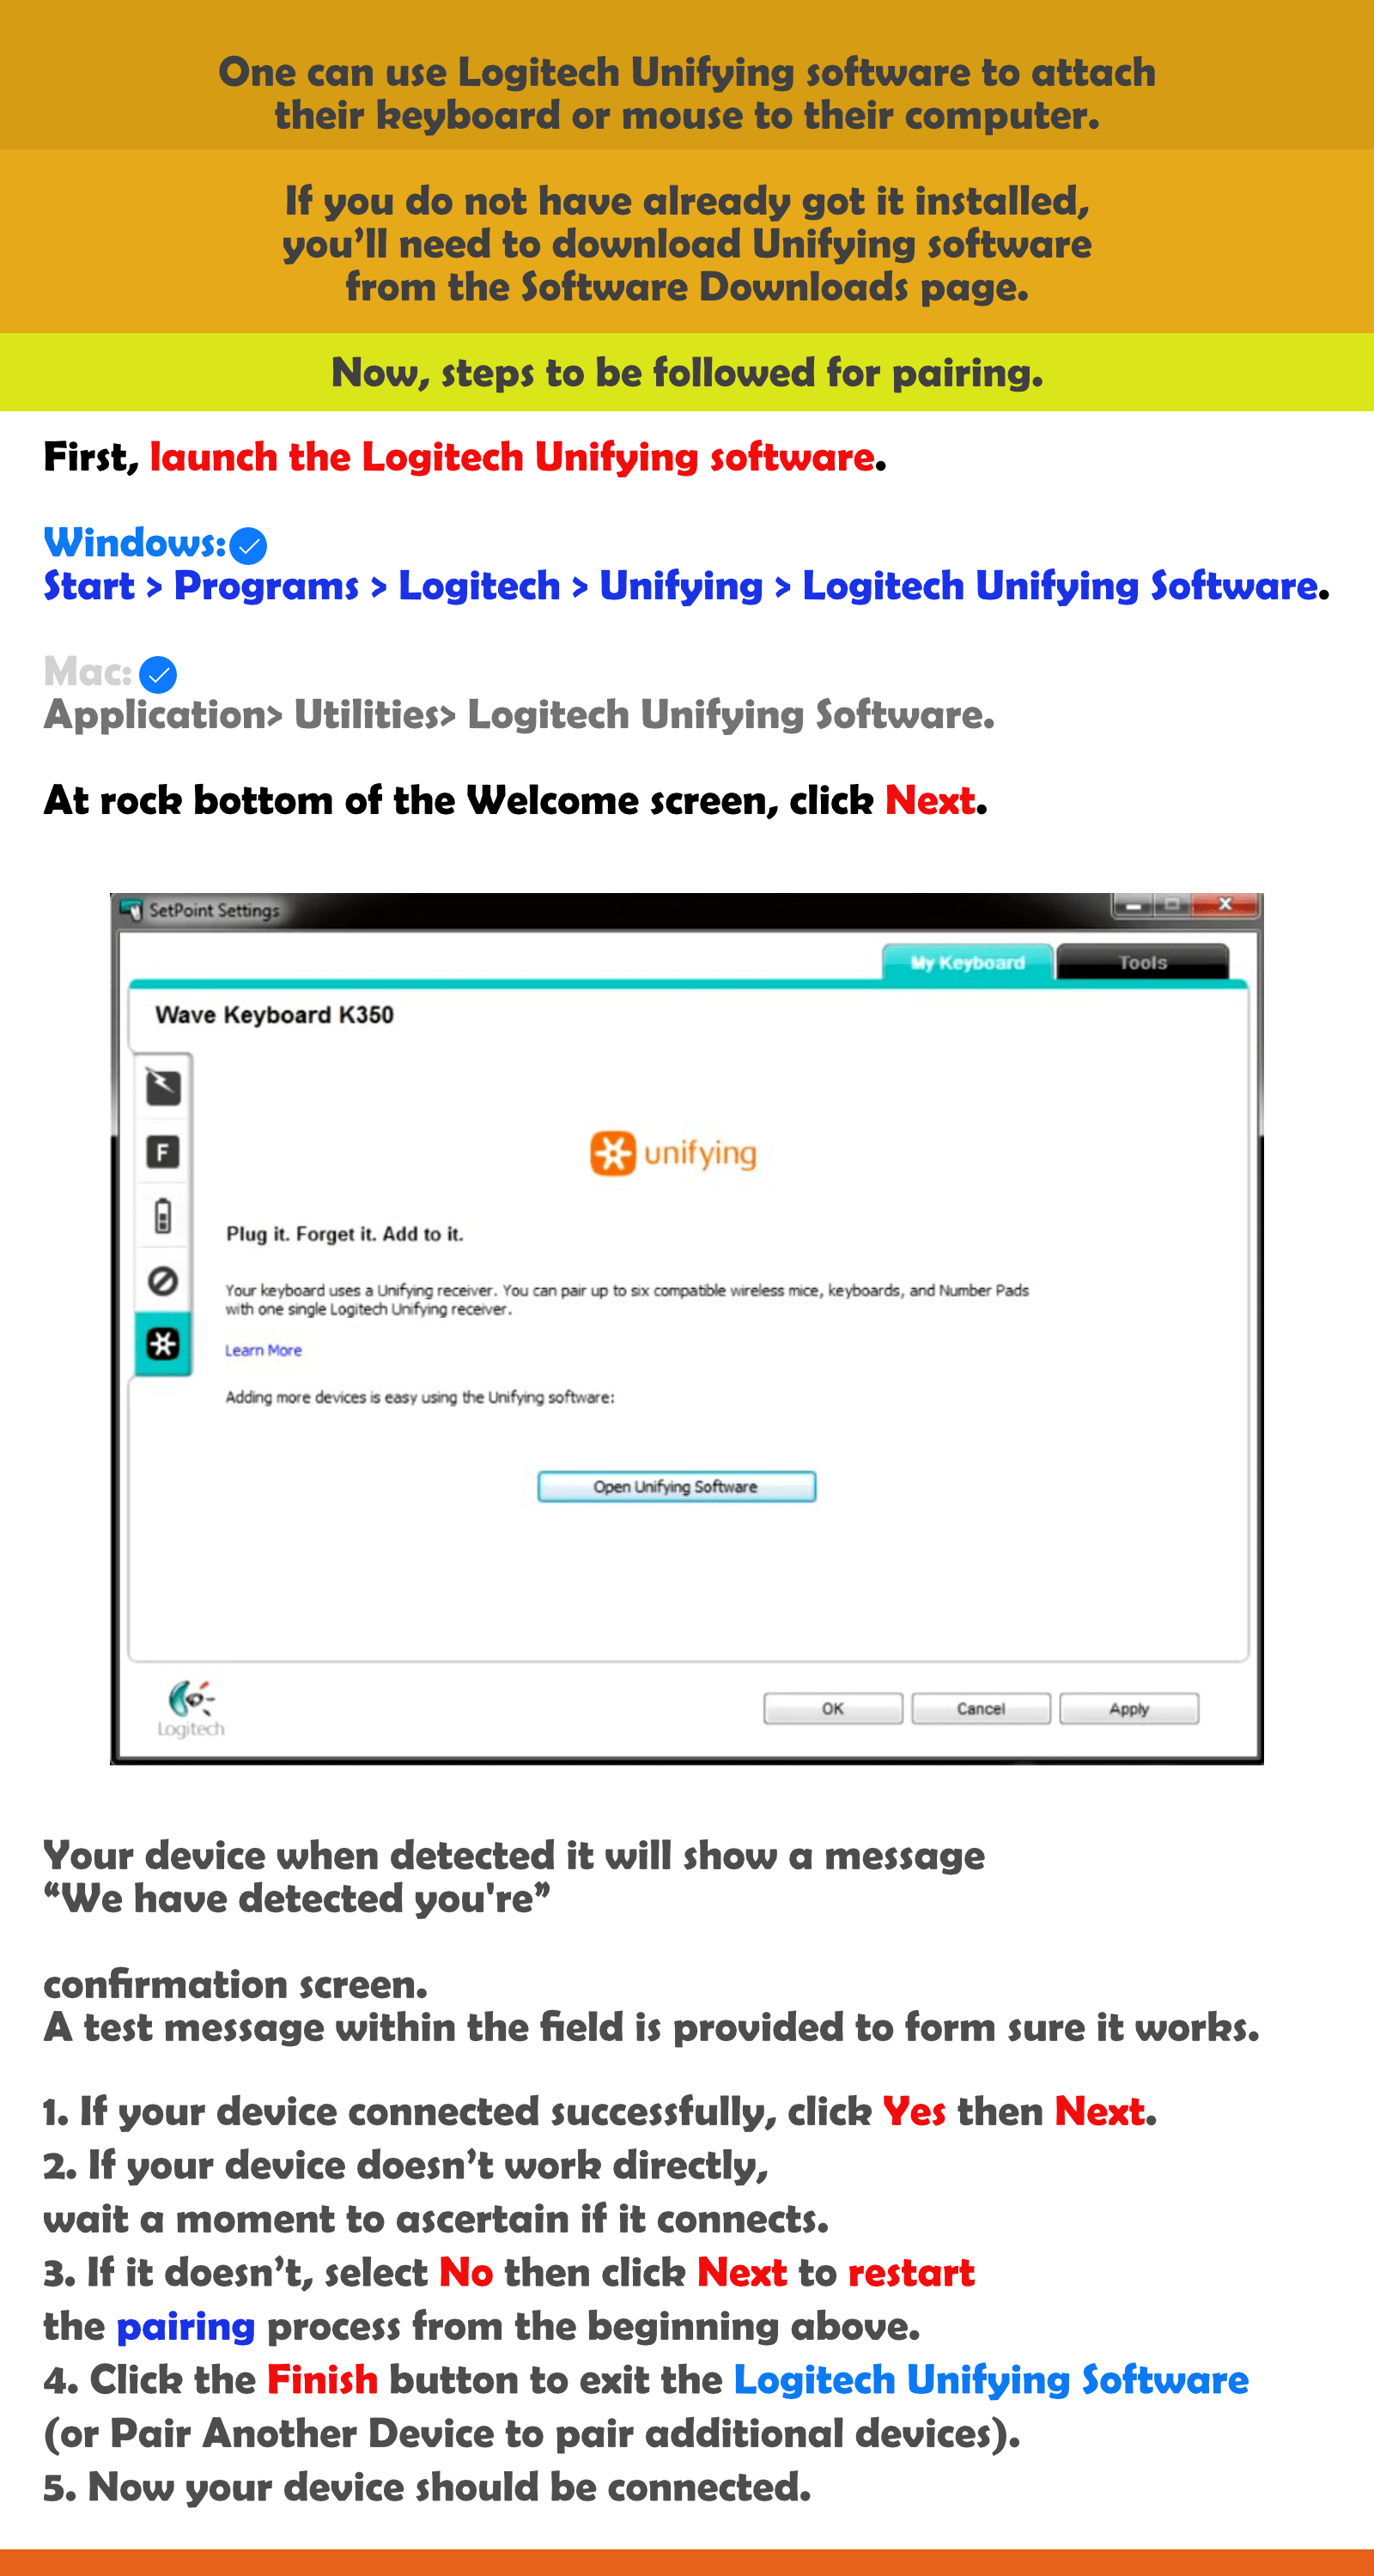 How to pair Logitech unifying software